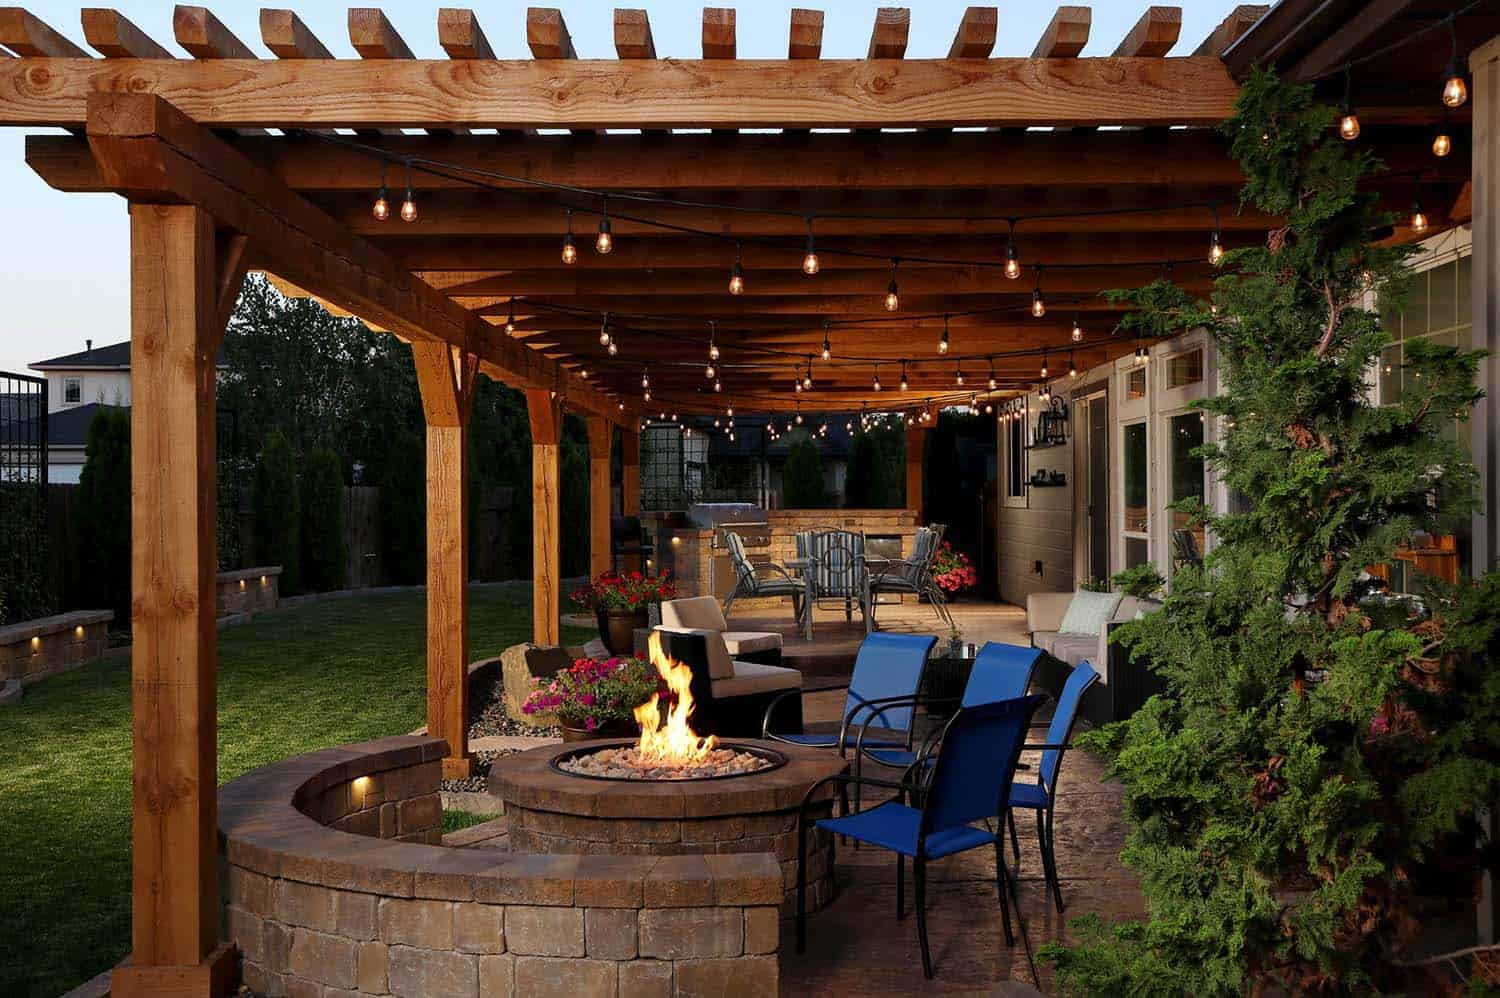 25+ Fabulous outdoor patio ideas to get ready for spring enjoyment on backyard construction ideas, backyard gazebo ideas, backyard fence ideas, small backyard ideas, garage ideas, backyard pool ideas, backyard hot tub ideas, backyard seating ideas, fireplace ideas, deck ideas, driveway ideas, backyard furniture ideas, backyard landscape ideas, backyard concrete ideas, backyard shed ideas, backyard pergola ideas, inexpensive backyard ideas, backyard courtyard ideas, backyard sunroom ideas, retaining wall ideas,